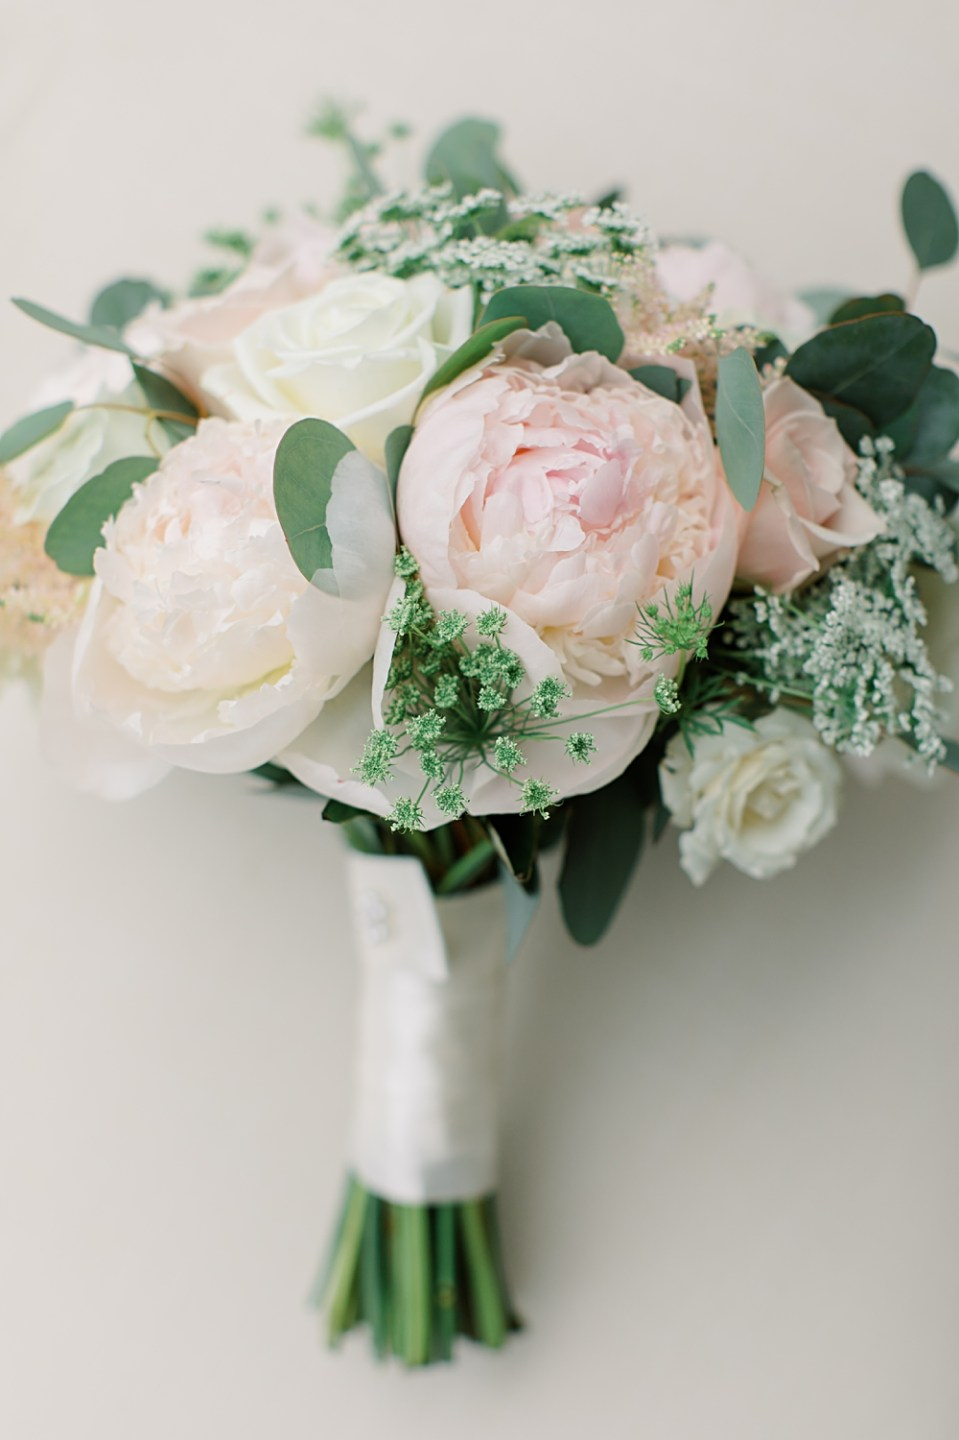 robertson's flowers bridal bouquet